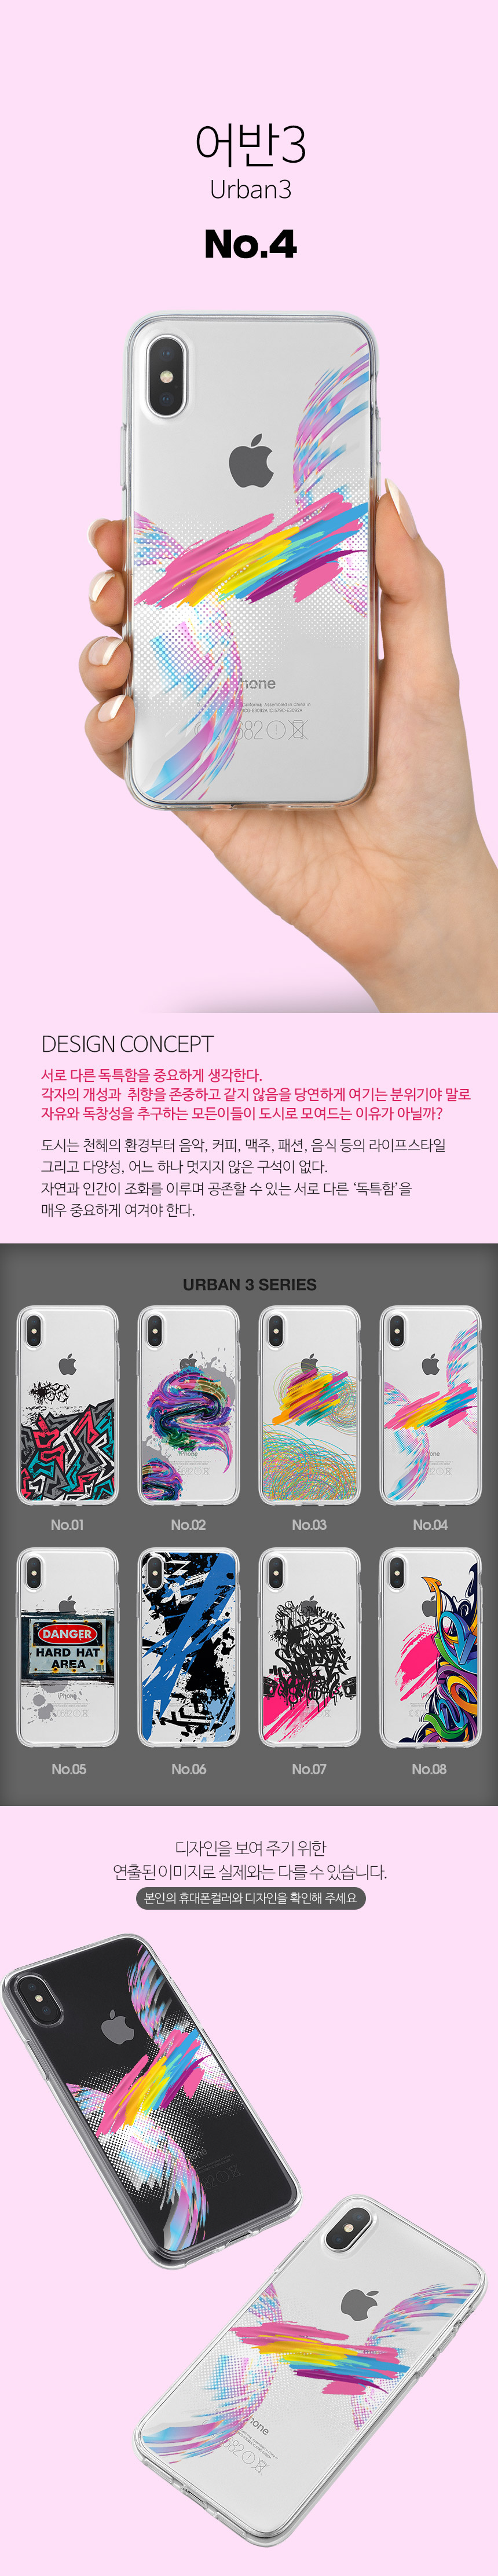 기키(GEEKY) [투명] phone case Urban3 No.4